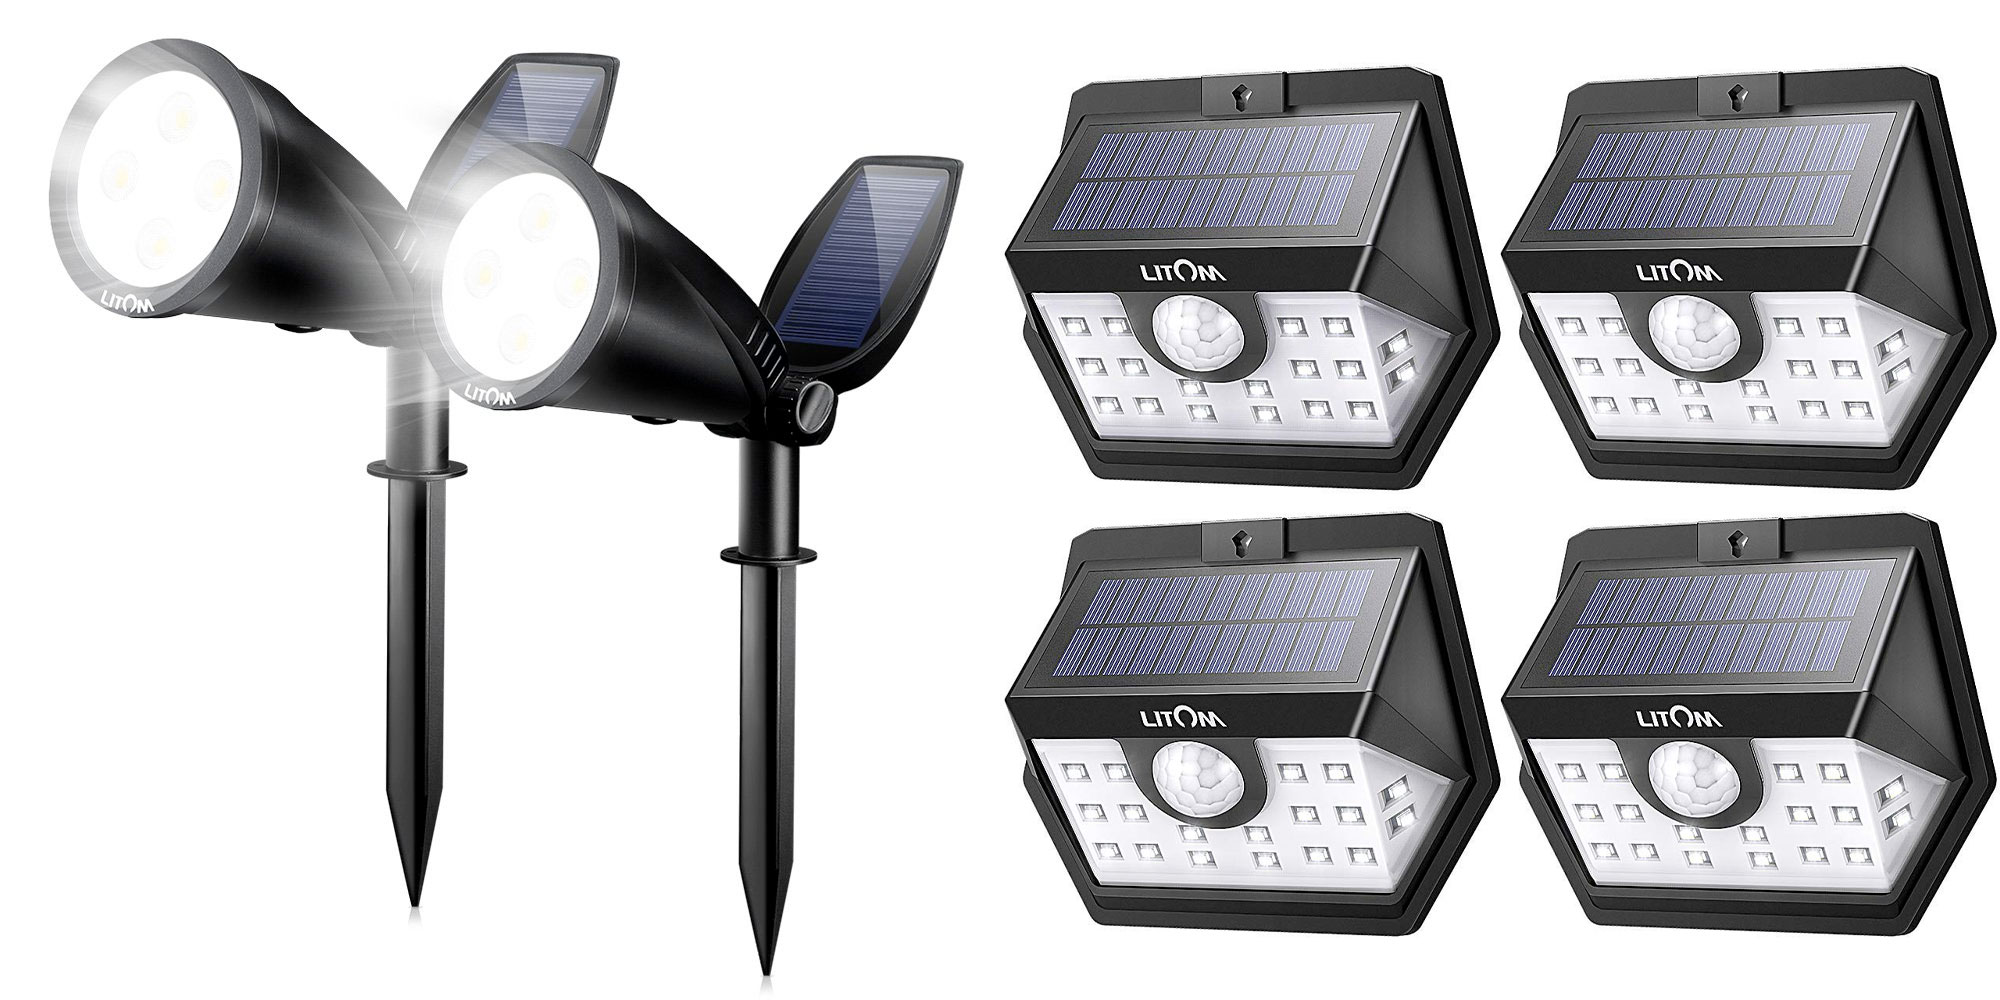 These solar lights are perfect for your backyard or landscaping from $12 shipped